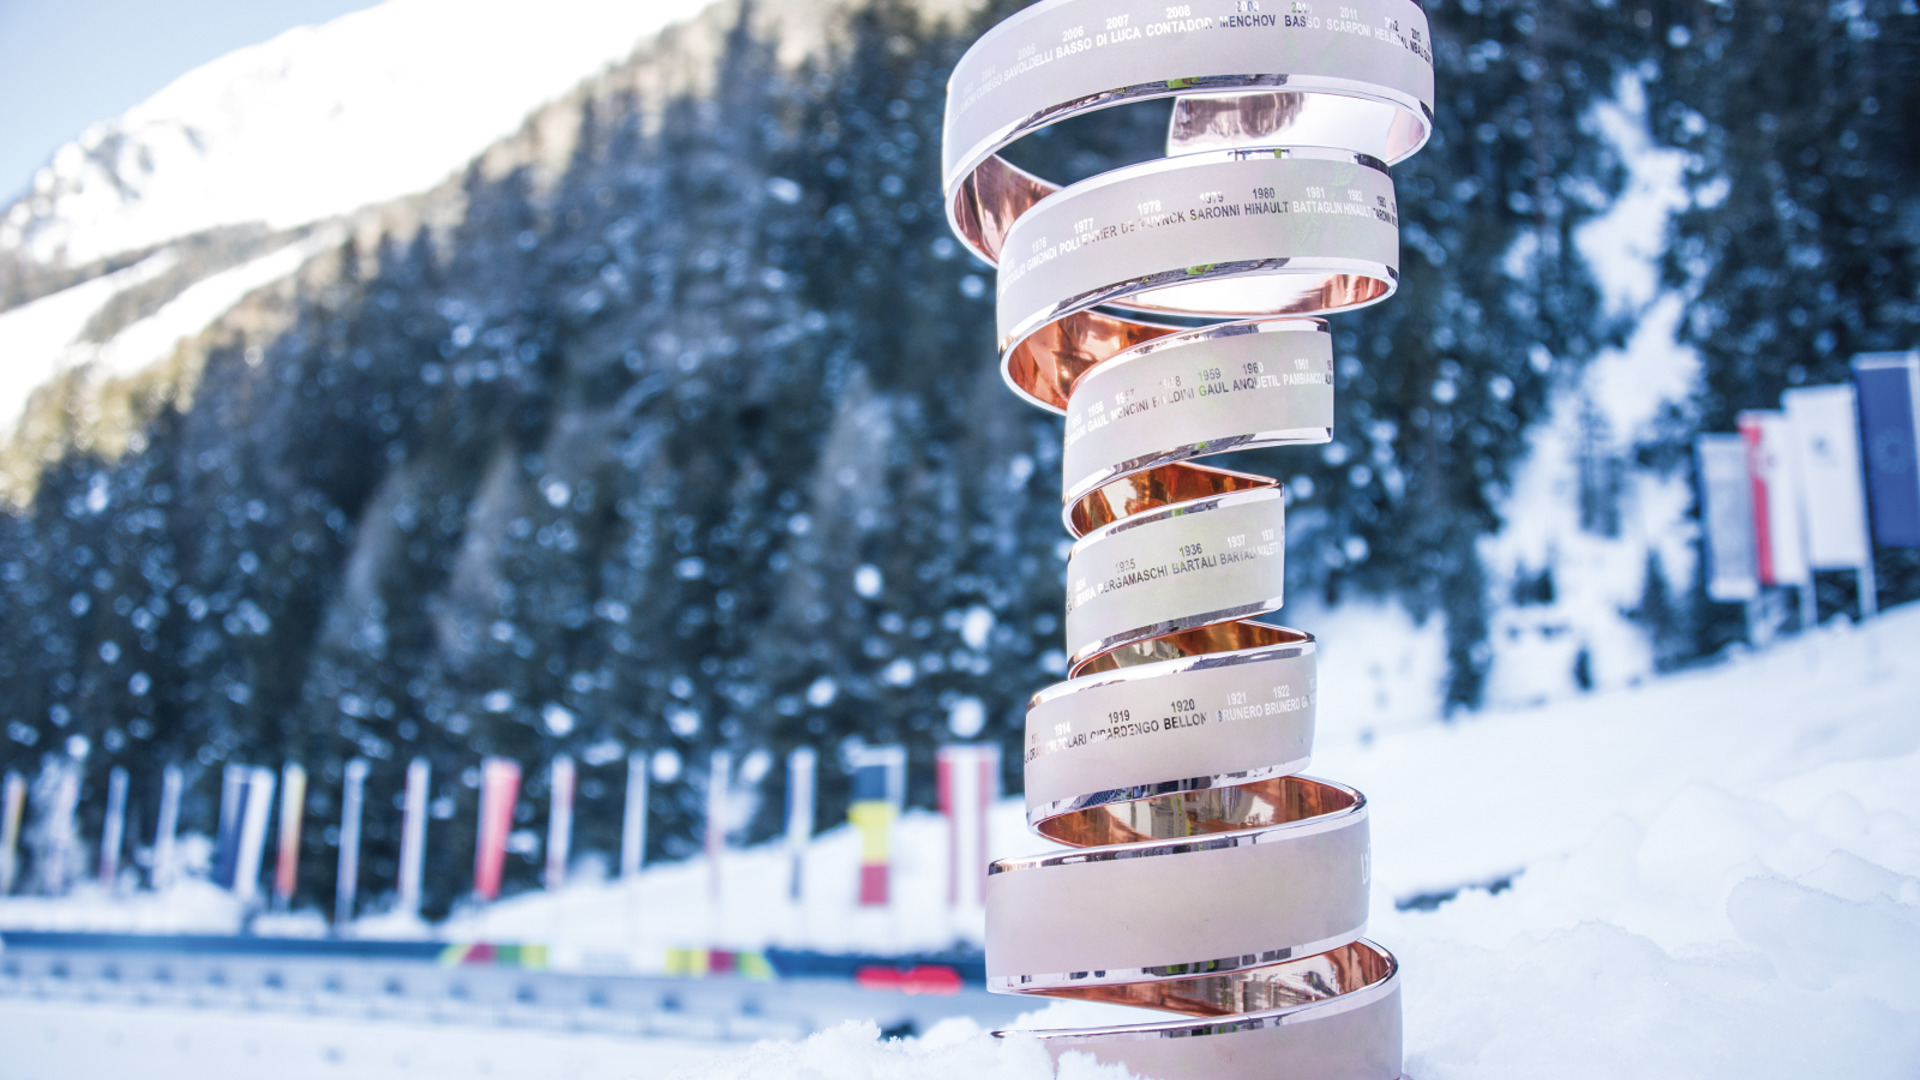 24.01.2019 - The neverending trophy of the Giro d'Italia is coming to Antholz